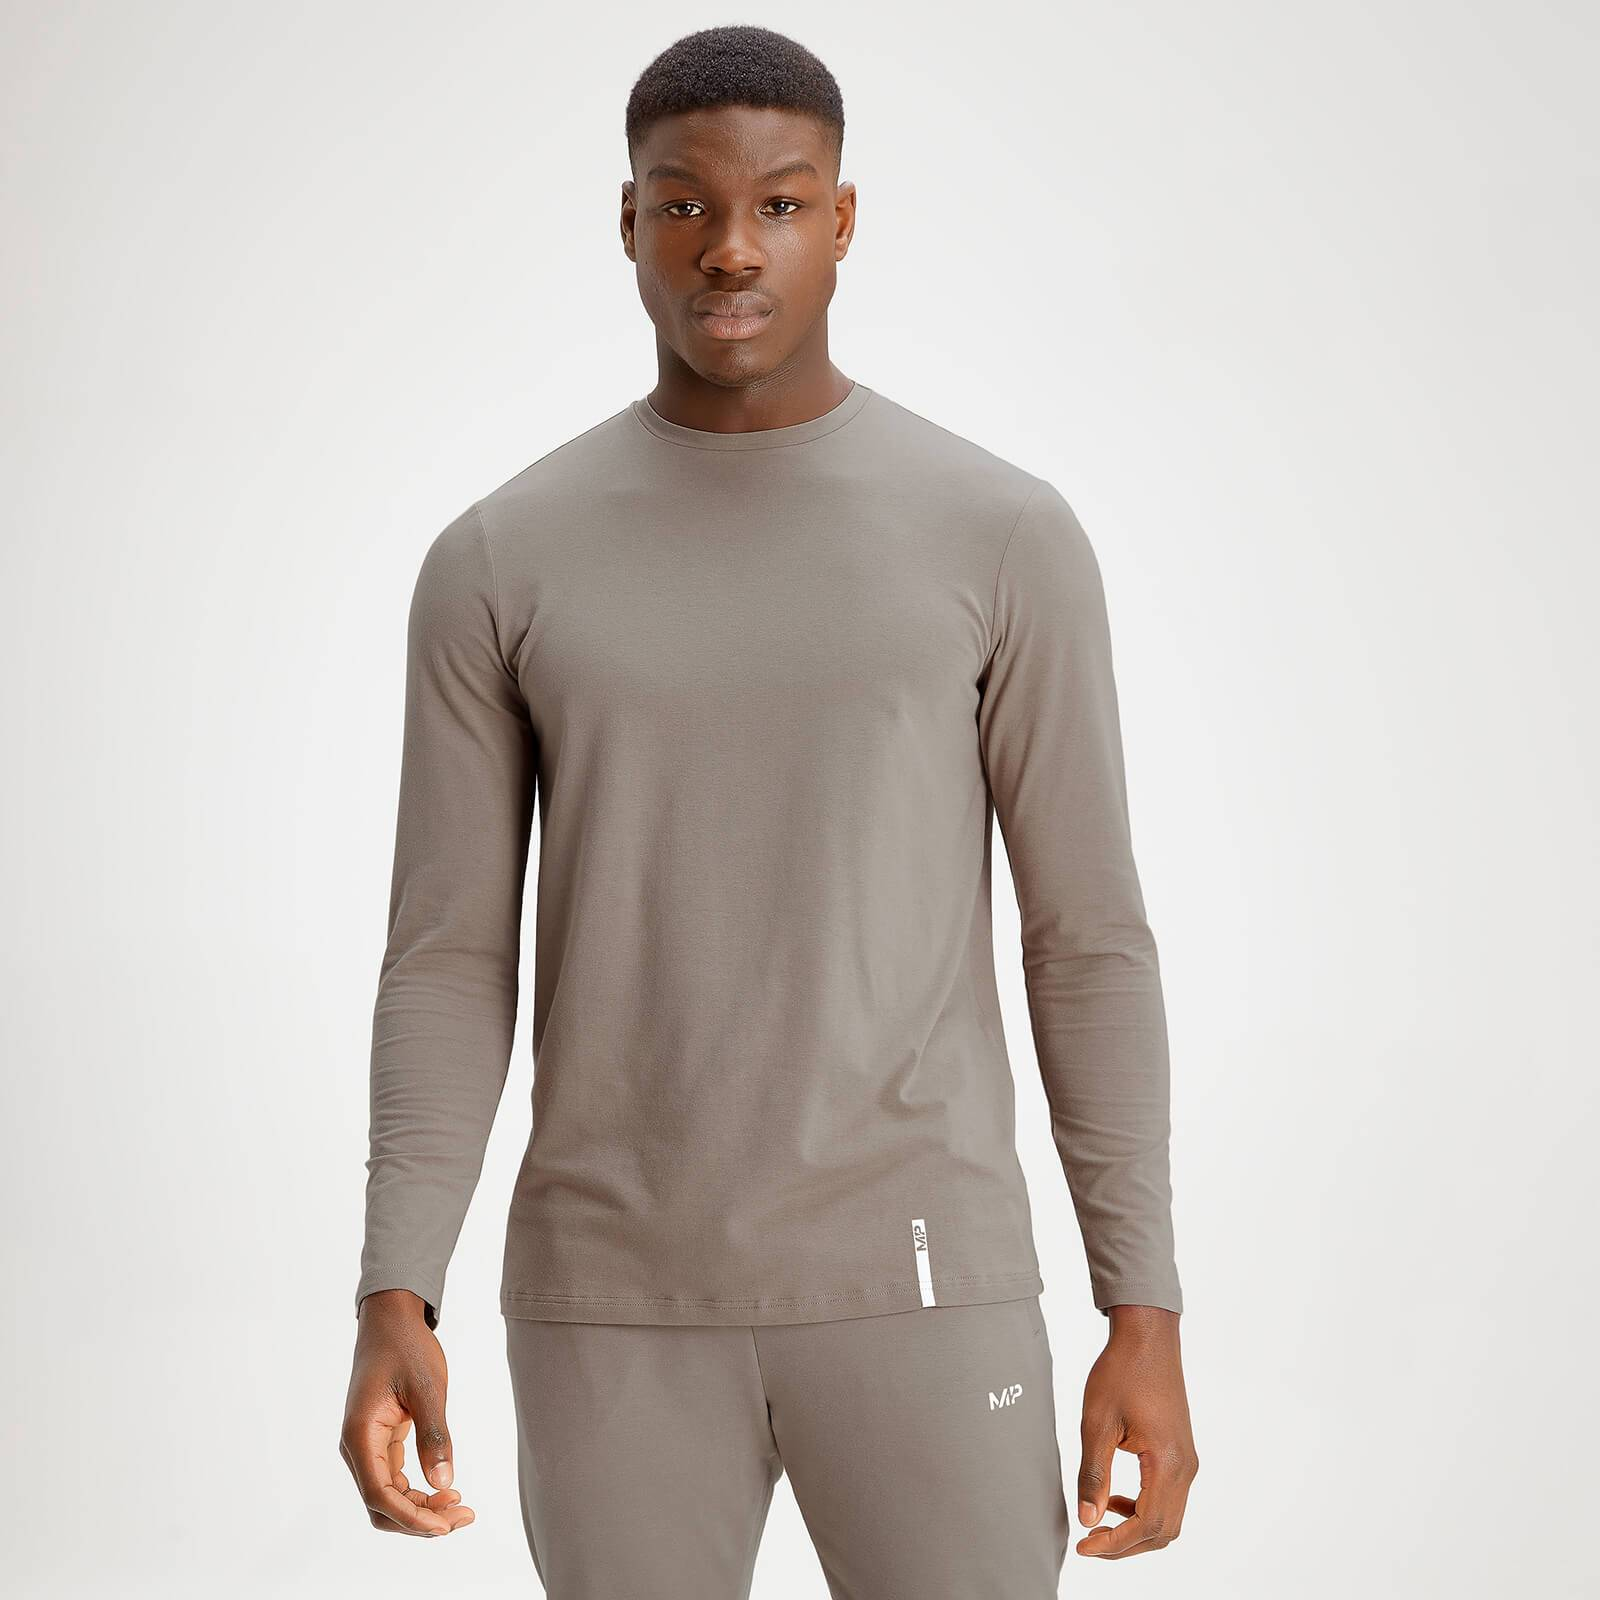 Mp Men's Luxe Classic Long Sleeve Crew Top - Taupe - XXL